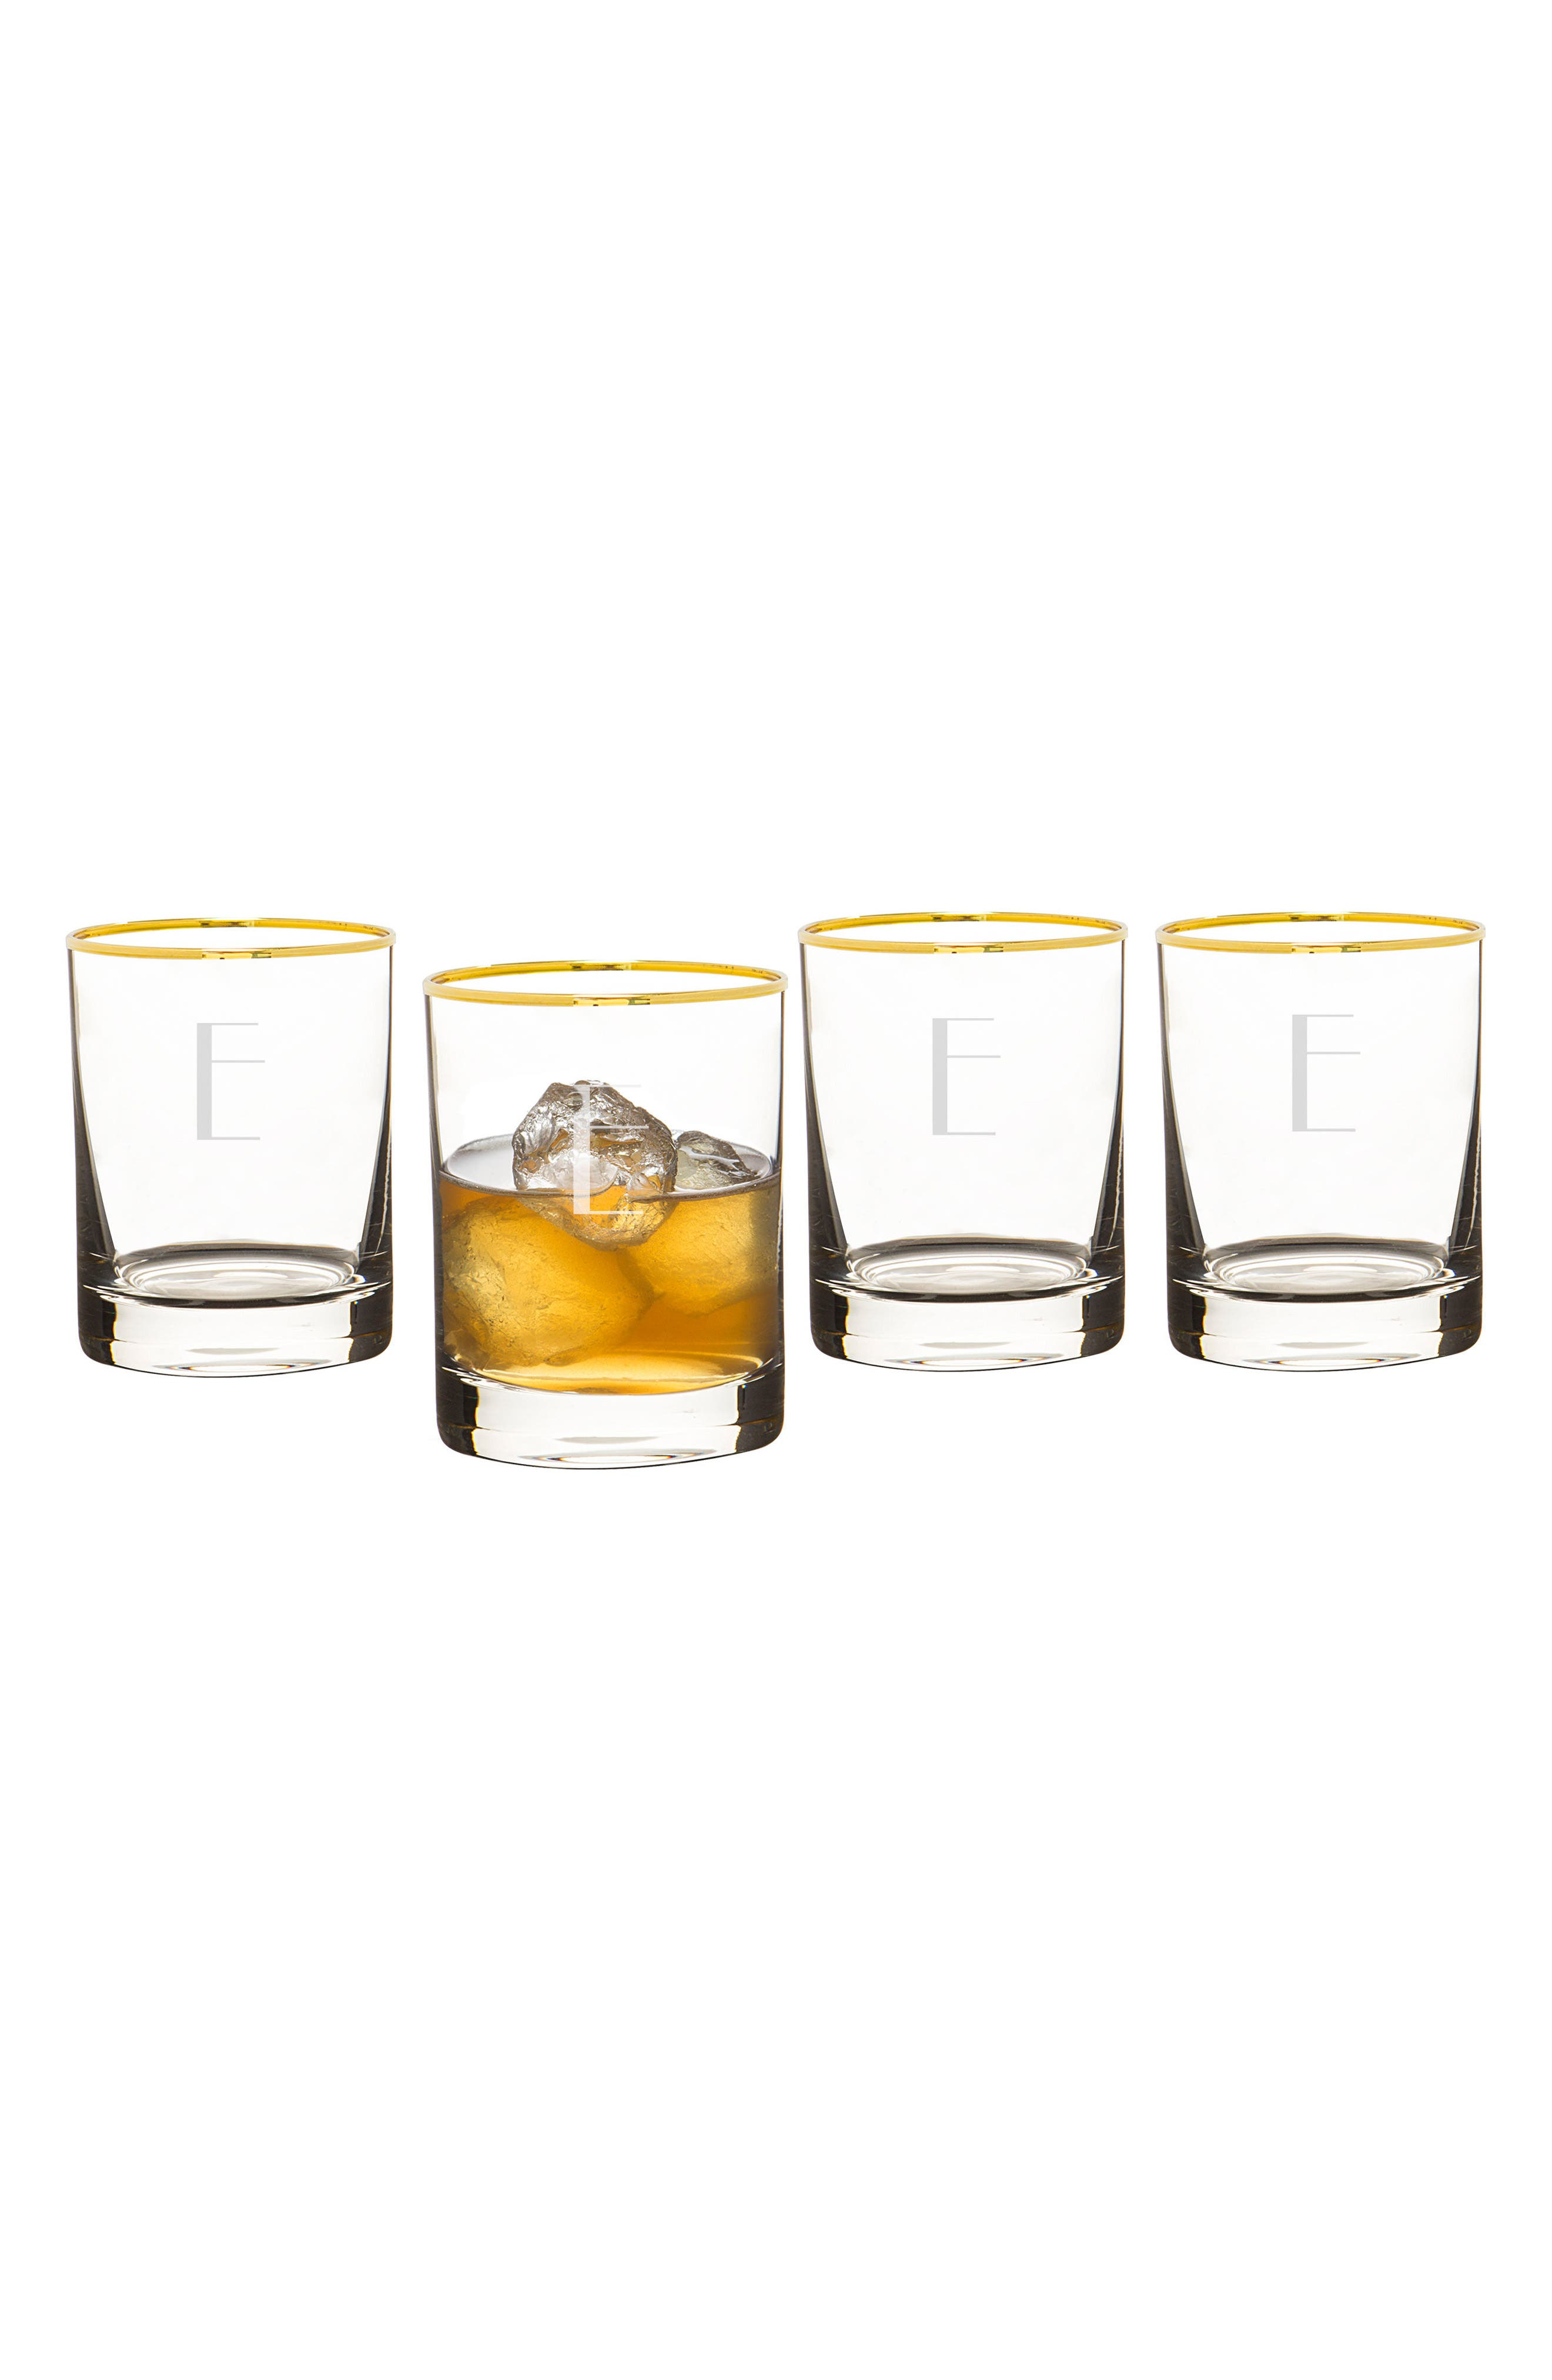 Monogram Set of 4 Double Old Fashioned Glasses,                             Main thumbnail 6, color,